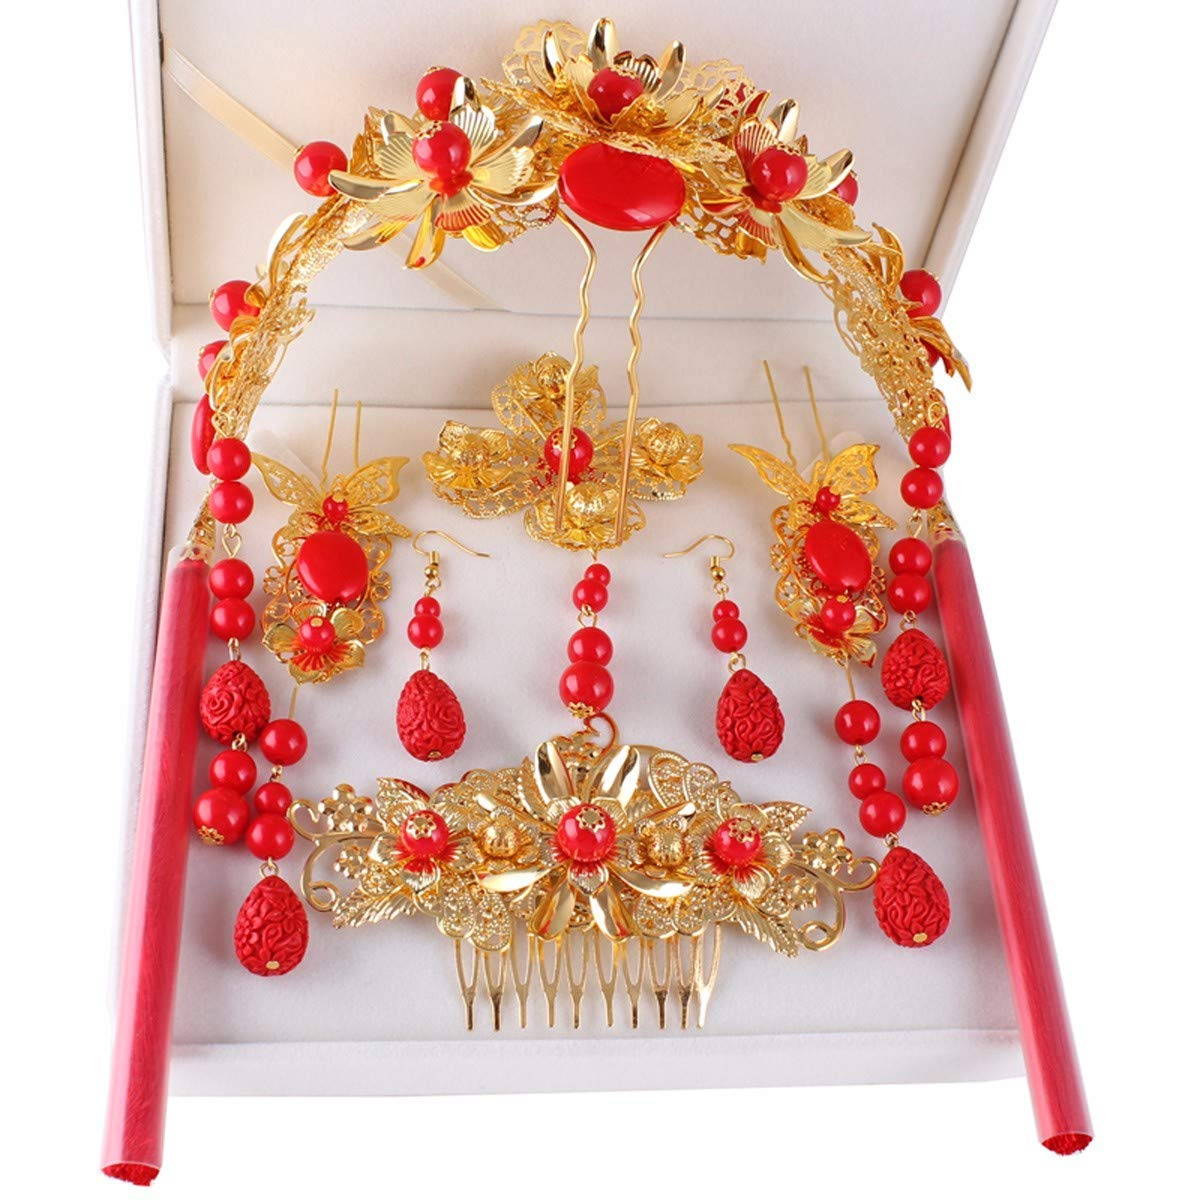 Crystal Crown, Beautiful headdress/Bridal Decorations Ancient Costumes Phoenix Style Red Tassels Chinese Wedding Show And Kimono Hair Accessories.